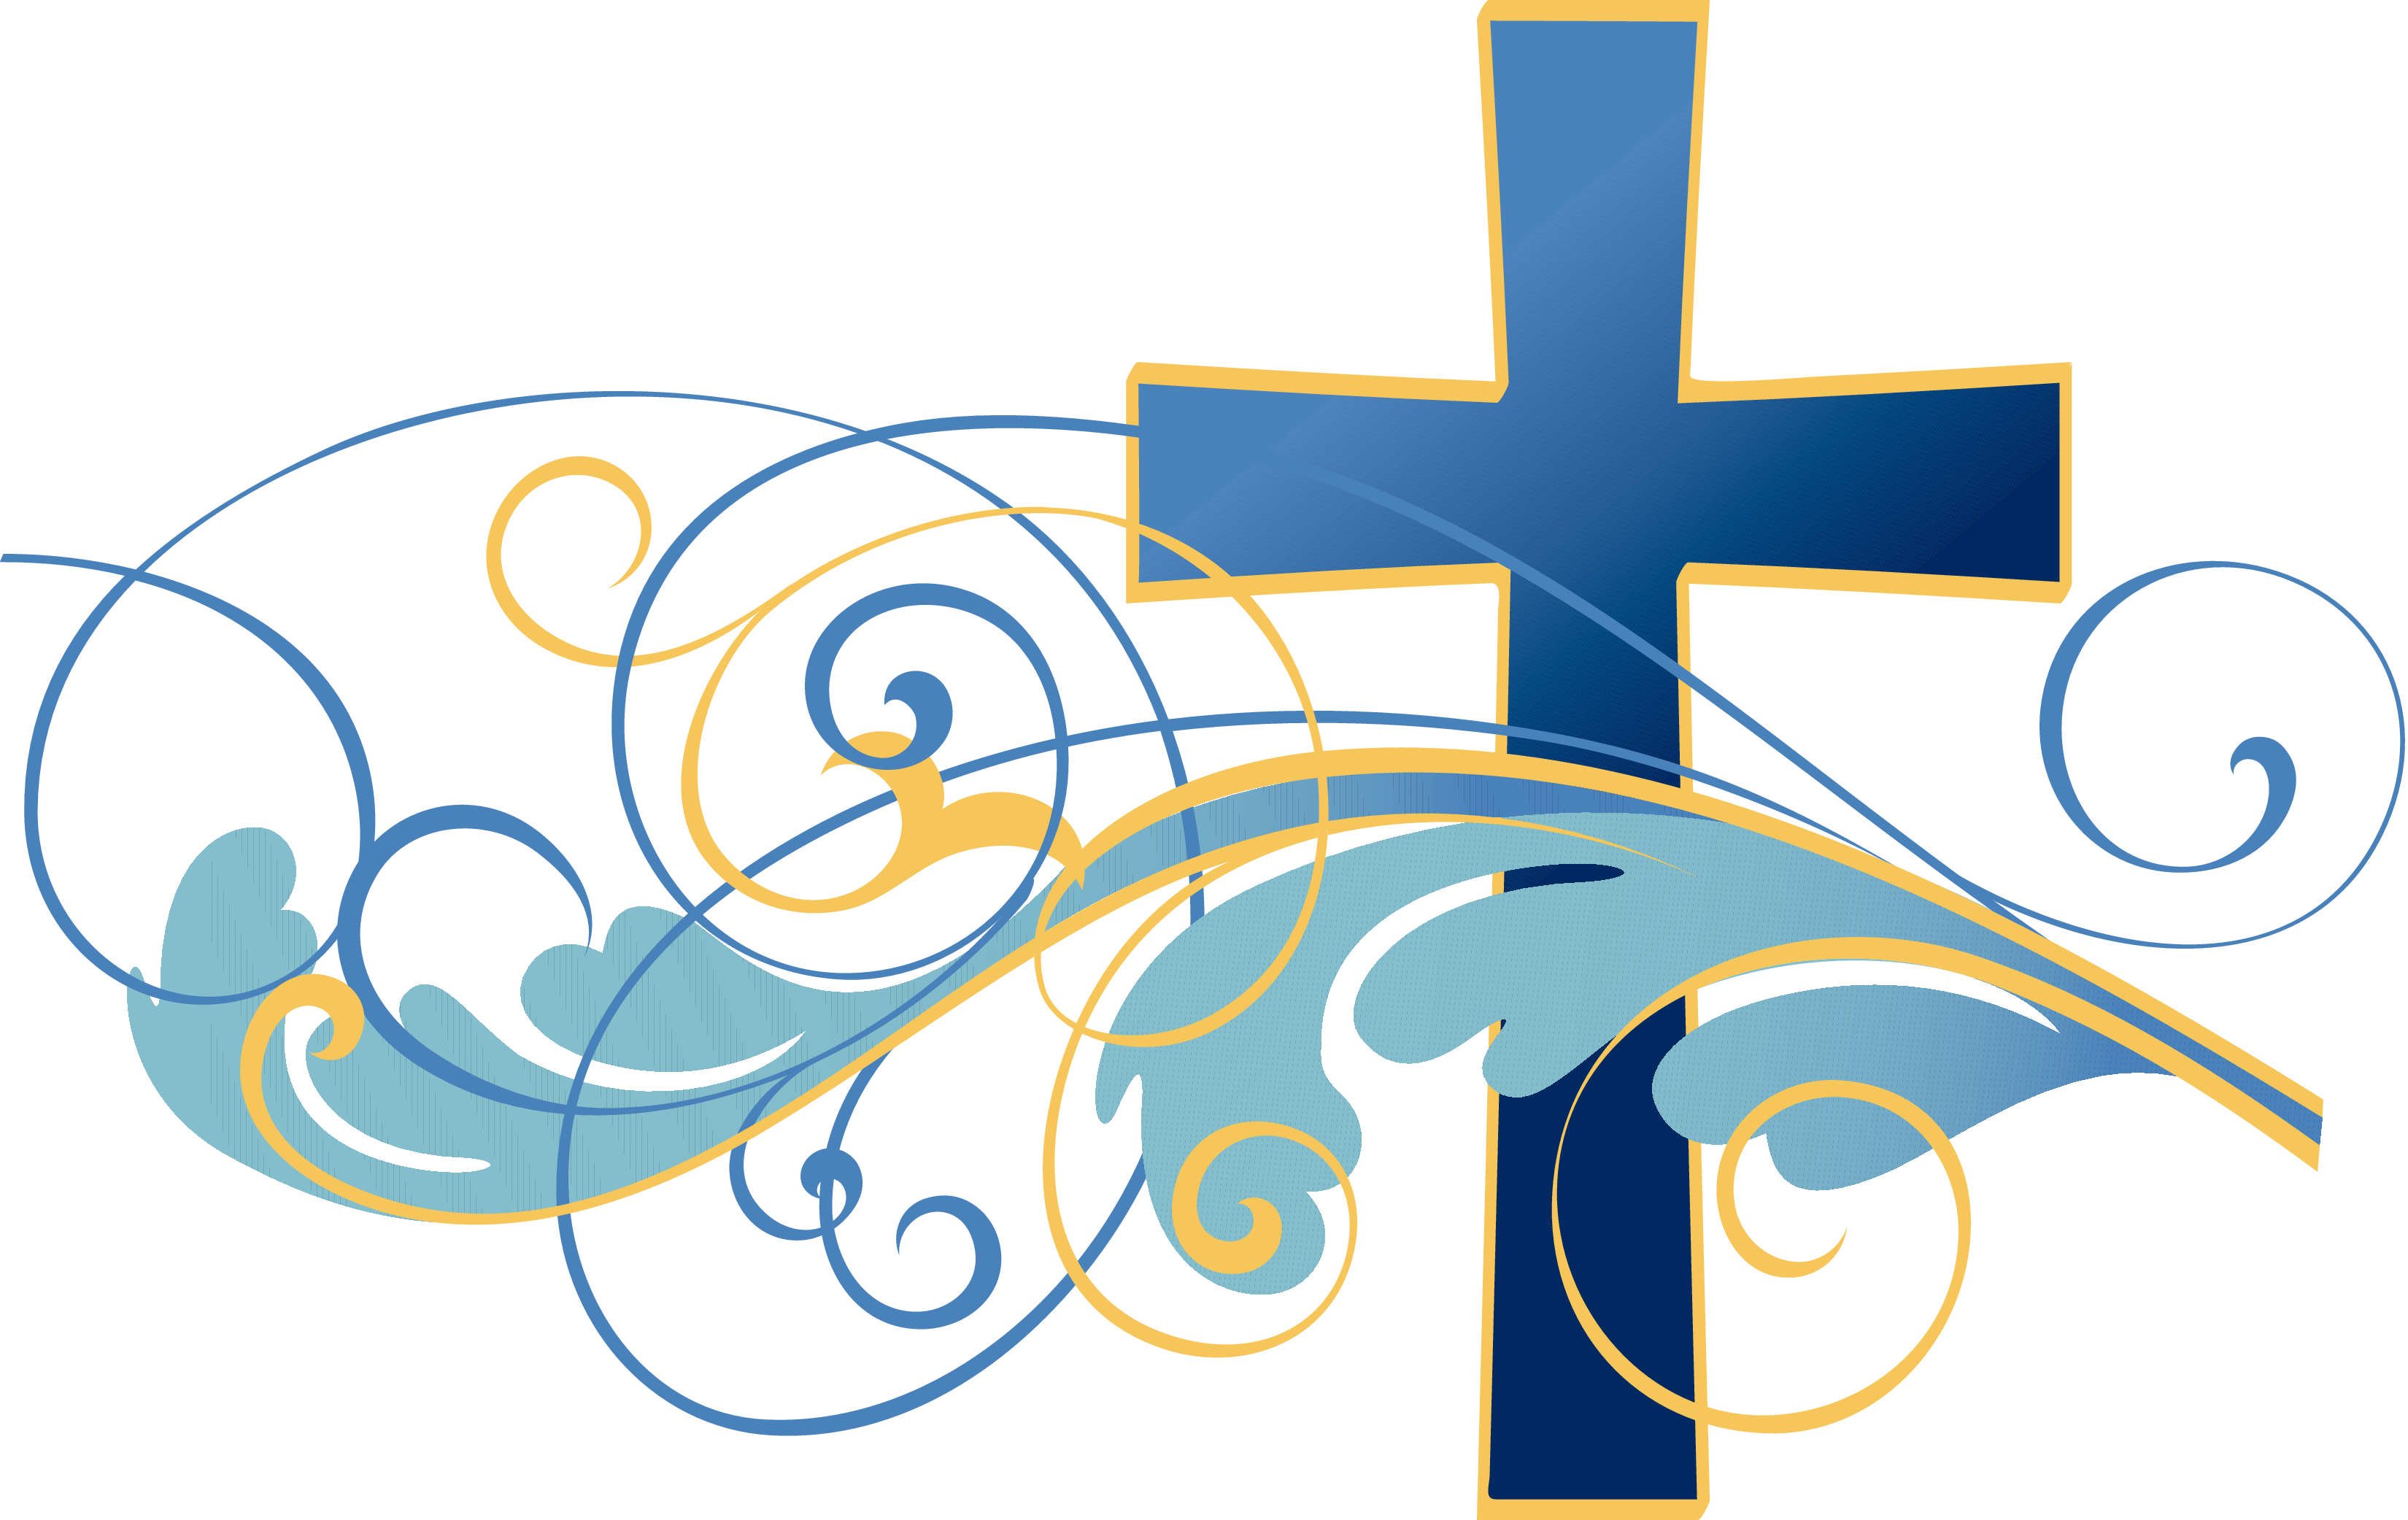 Christian Clip Art Borders Free Clipart -Christian clip art borders free clipart images-1